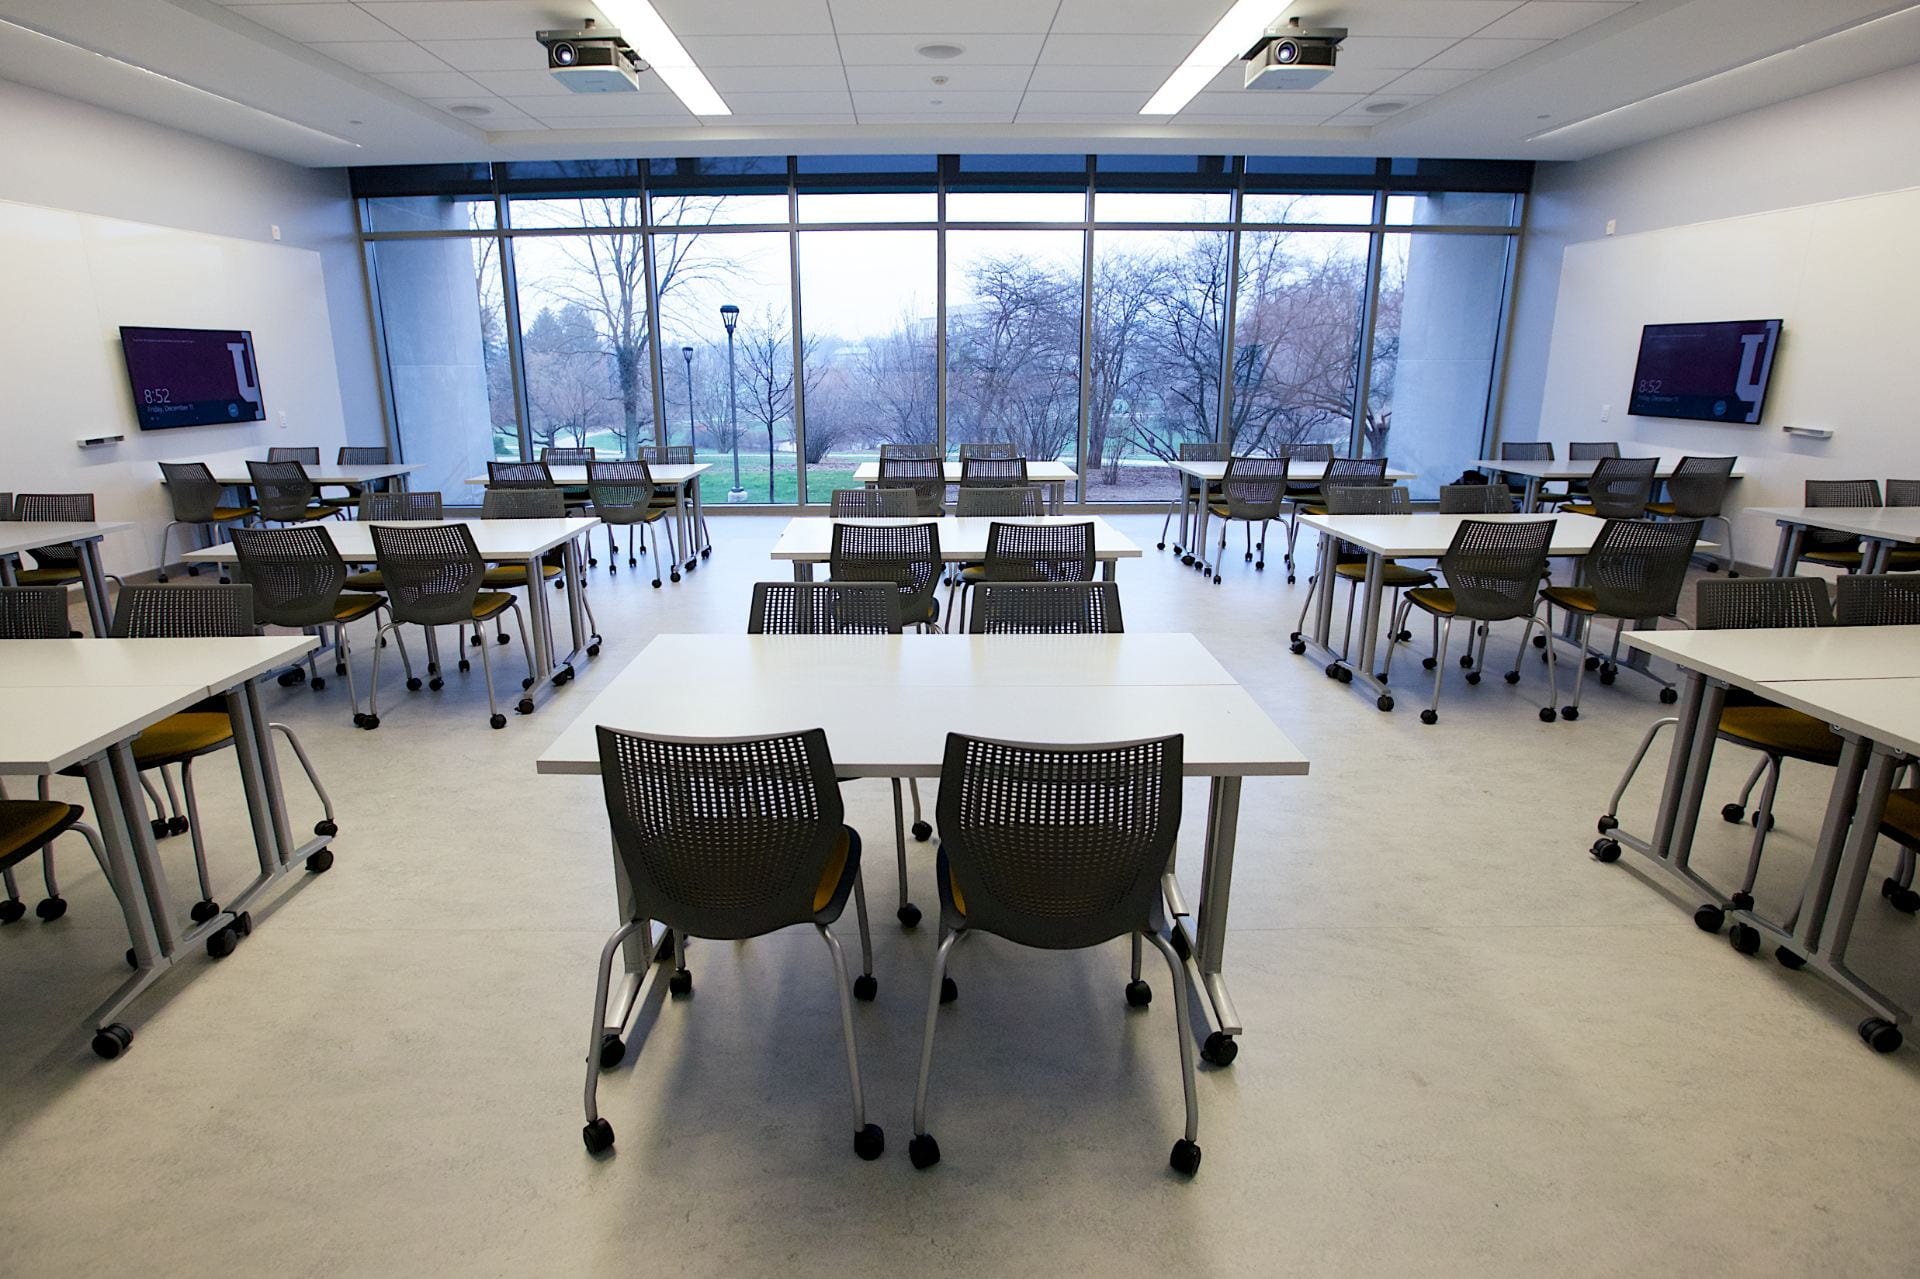 Student tables and chairs are organized in the space to create groups of four.